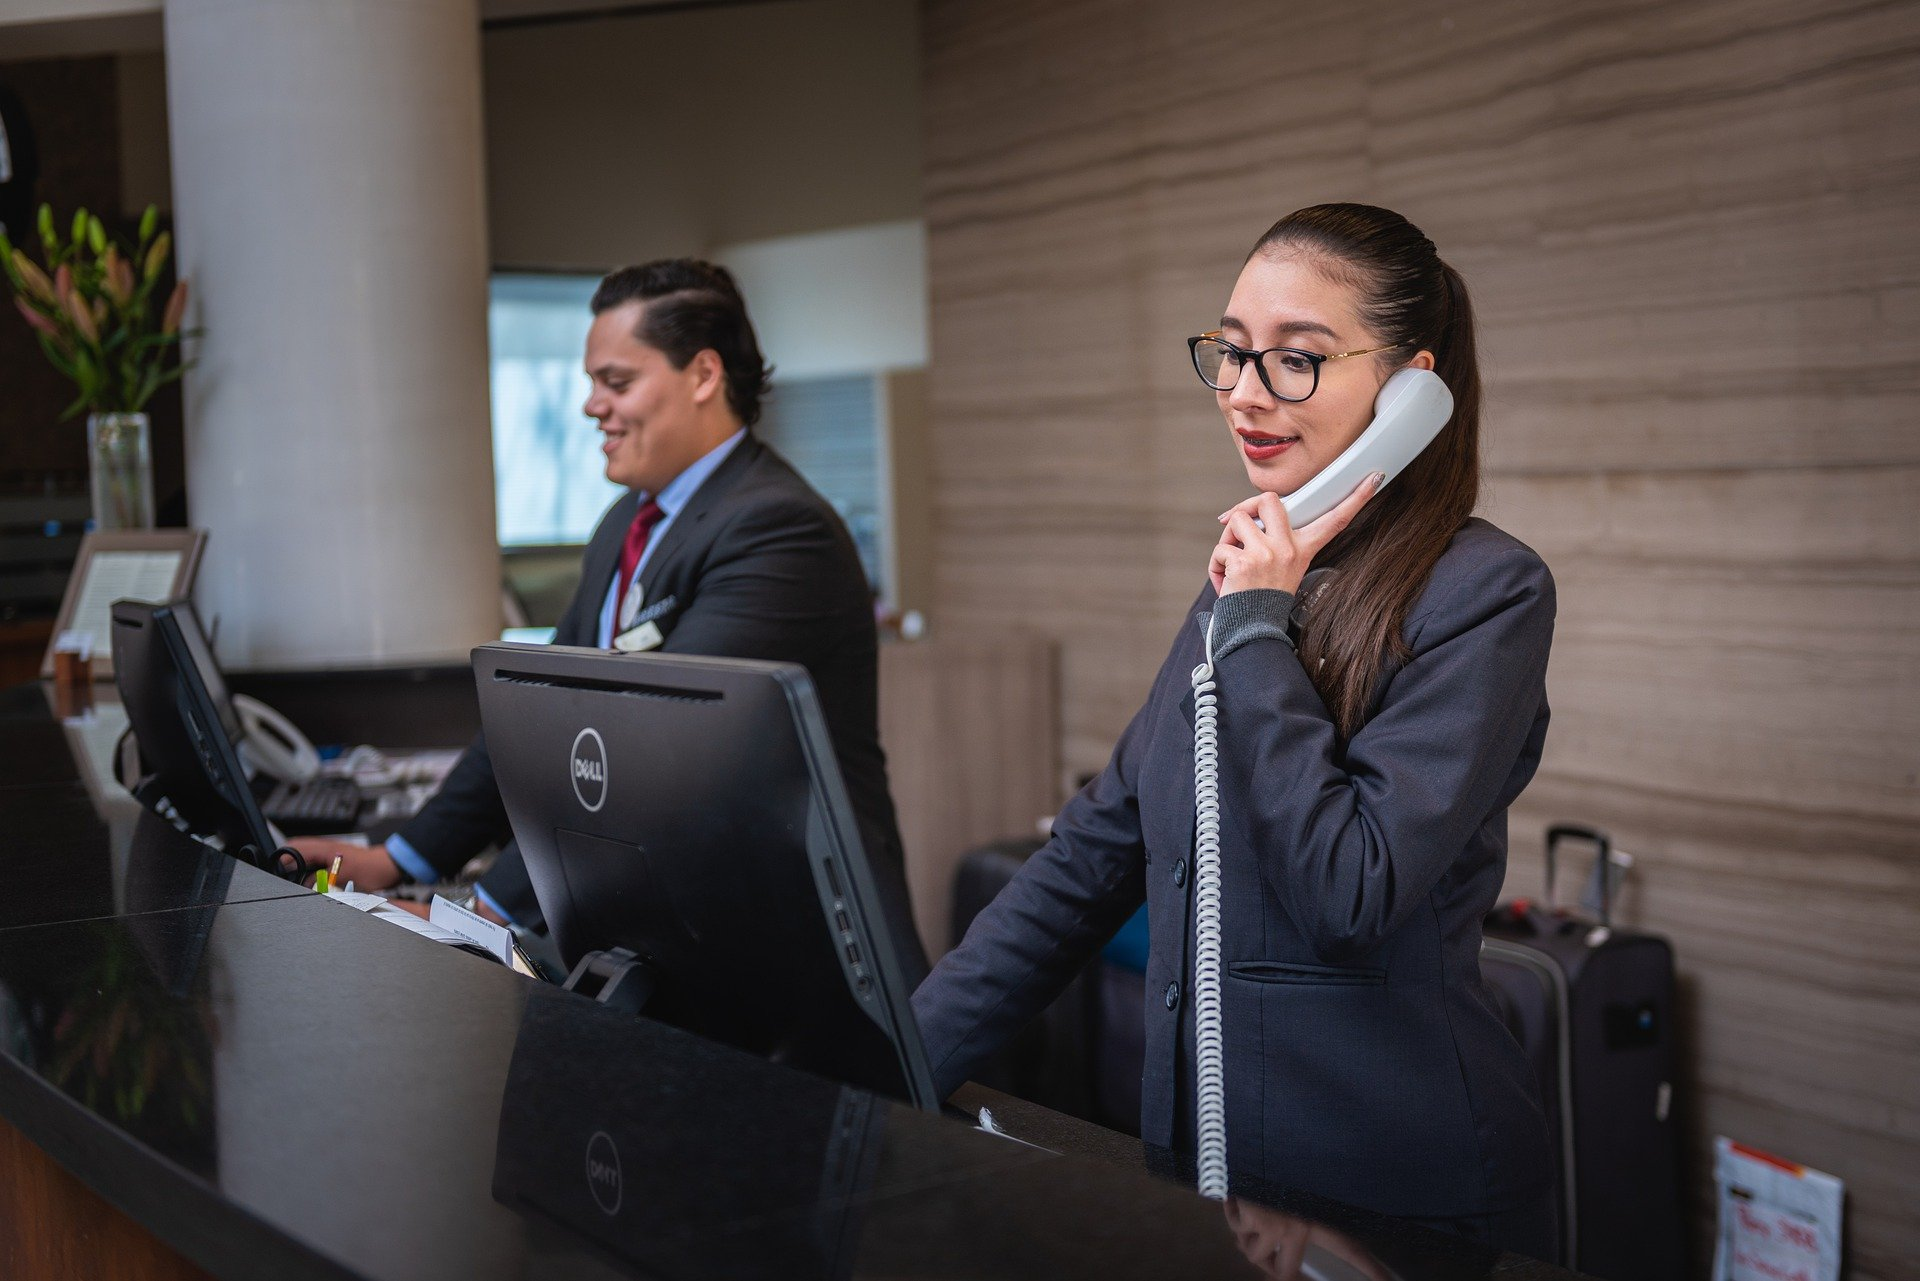 What Are The Key Duties & Responsibilities Of A Receptionist?